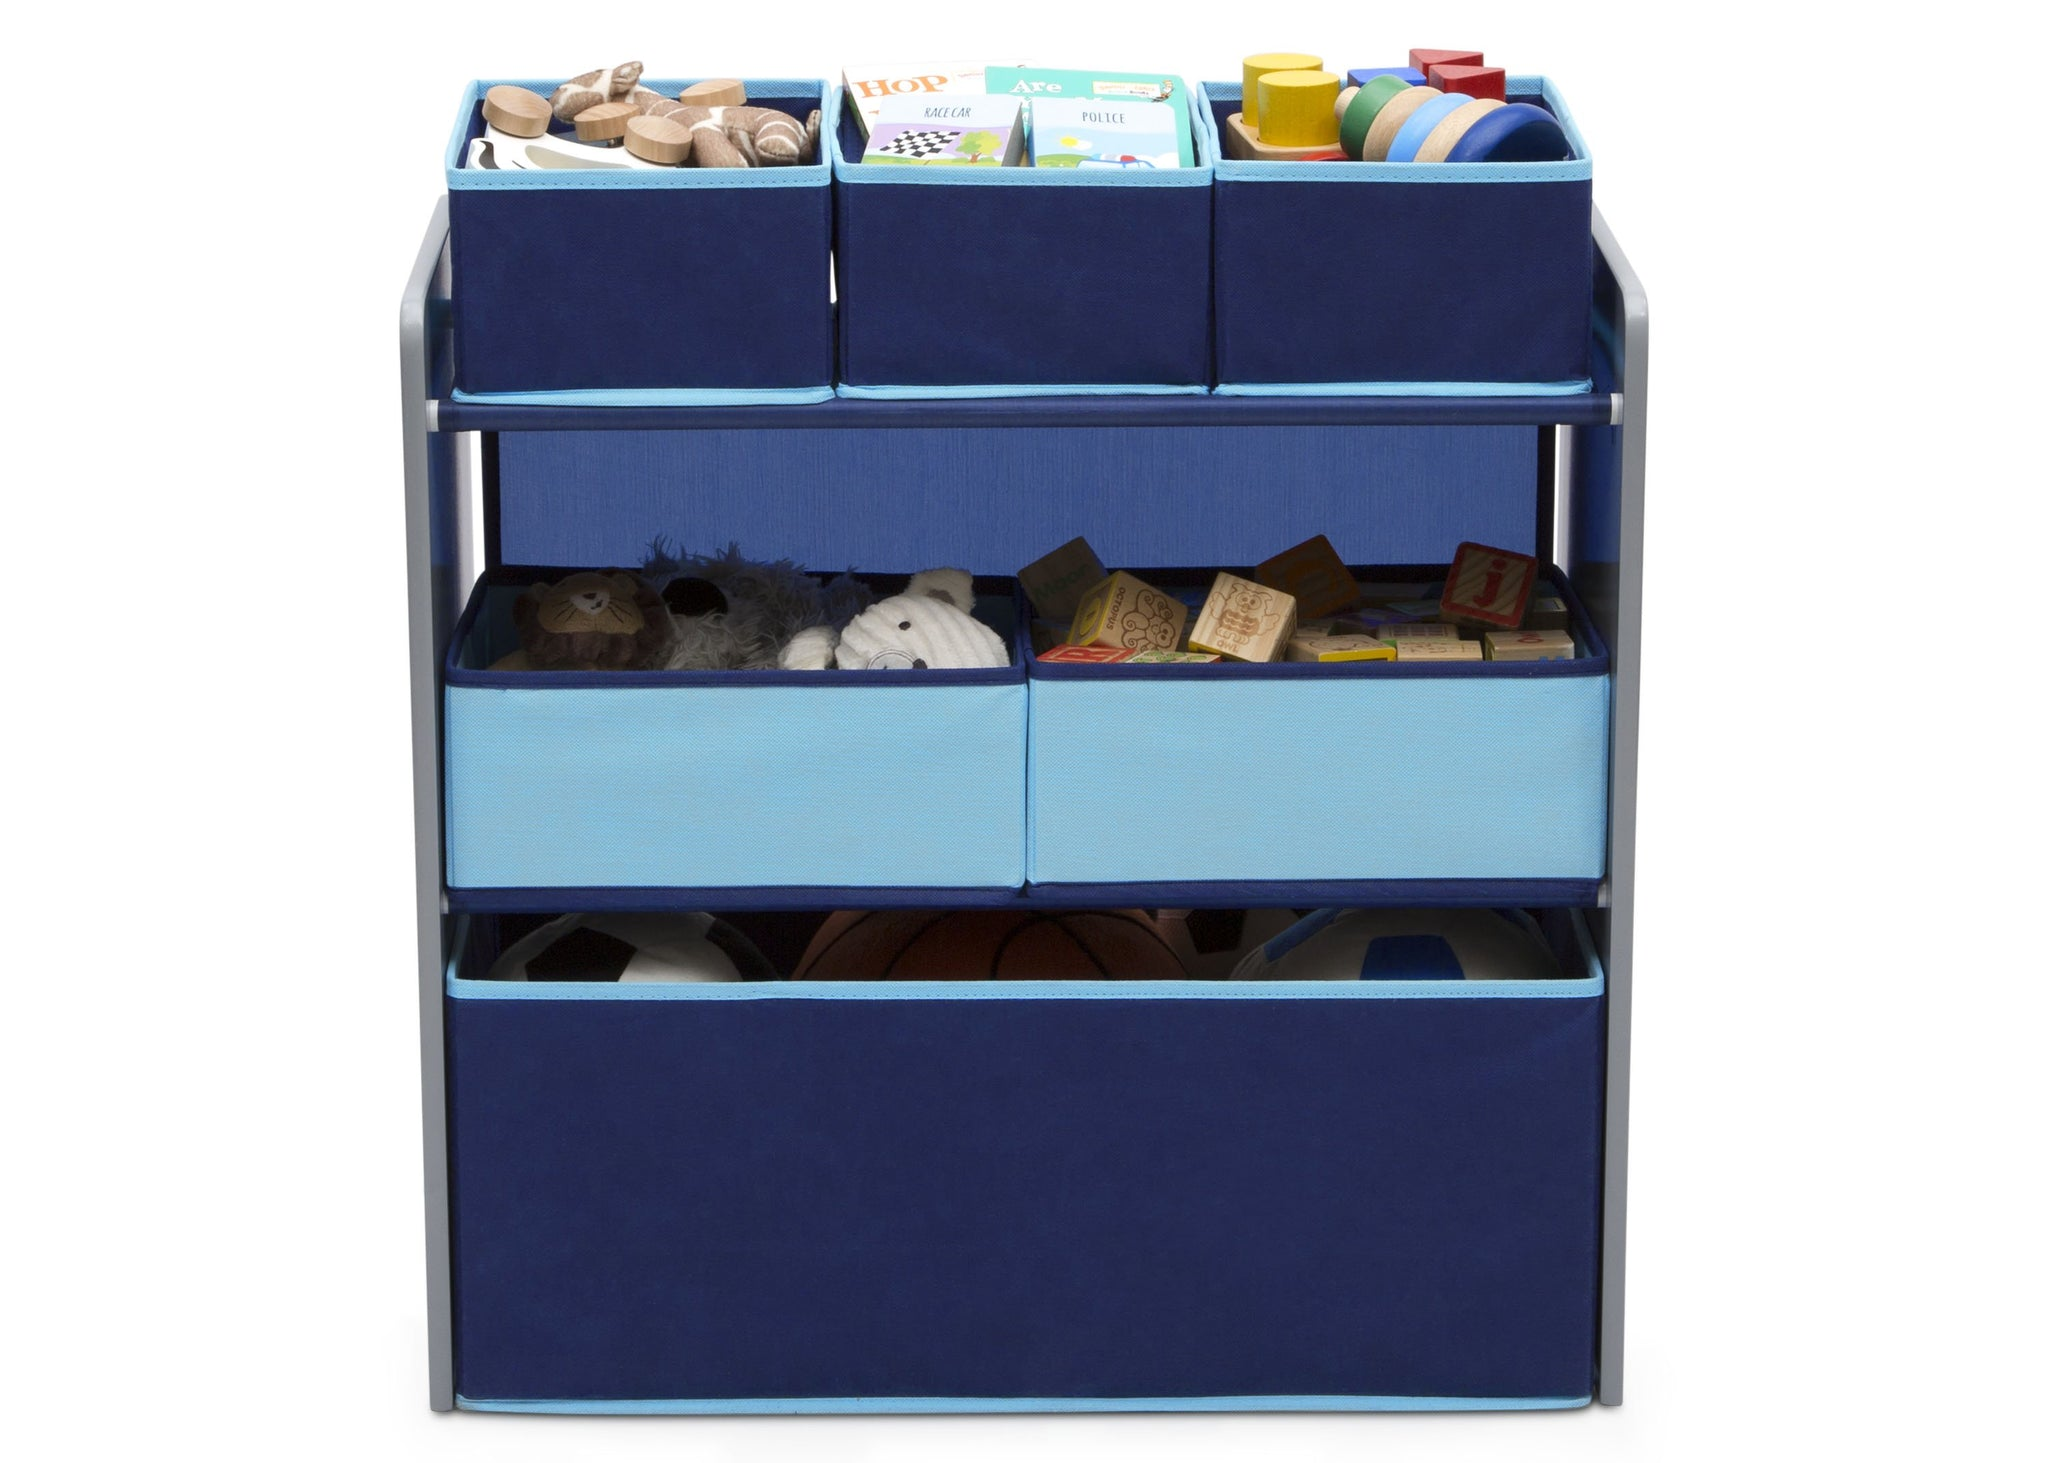 Delta Children Grey with Blue (026) Design and Store 6 Bin Toy Organizer, Front Silo View